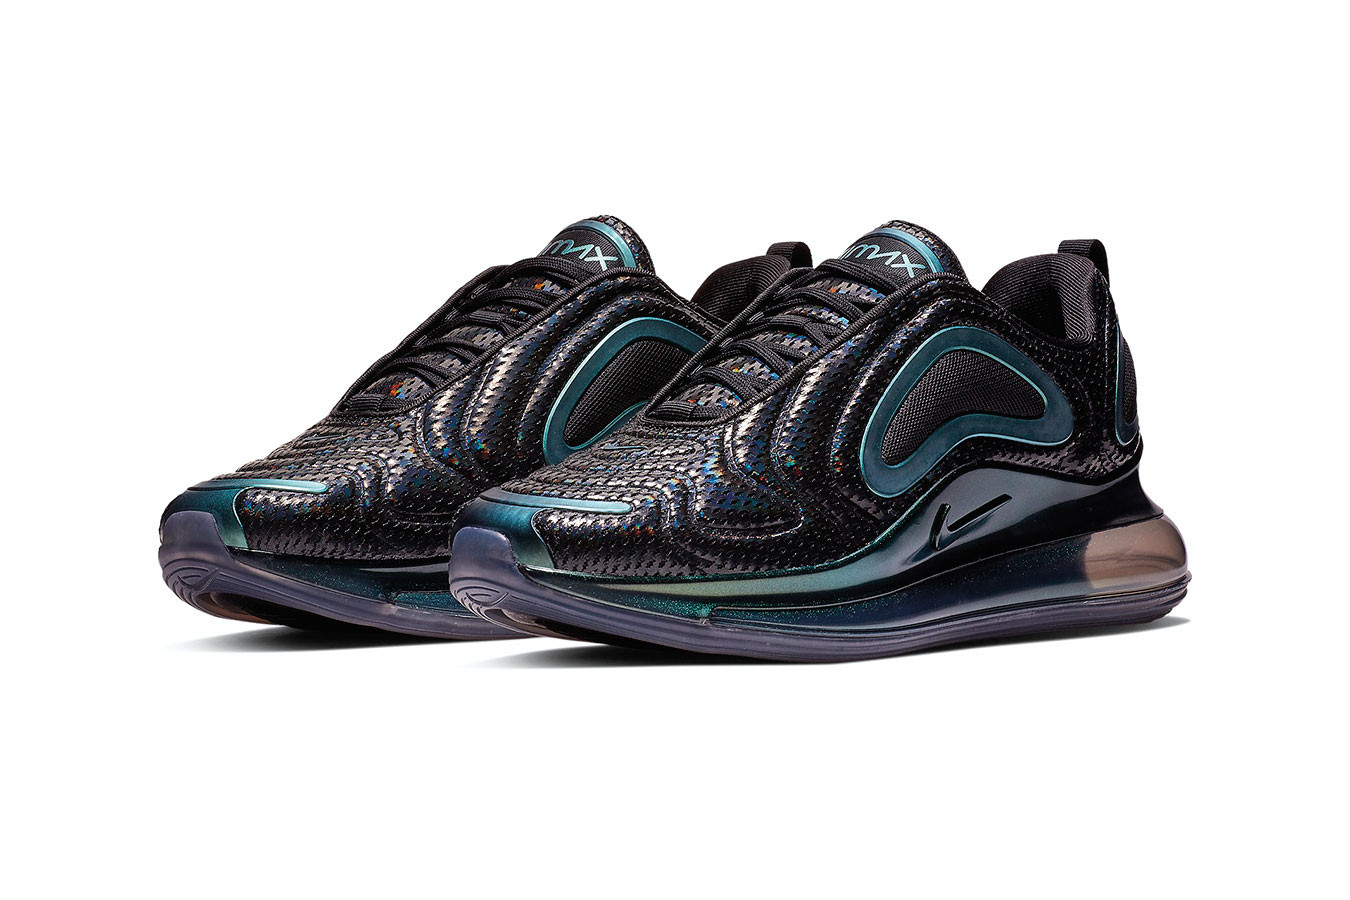 Nike Are Dropping Their Upcoming Air Max 720 In A Fire Iridescent